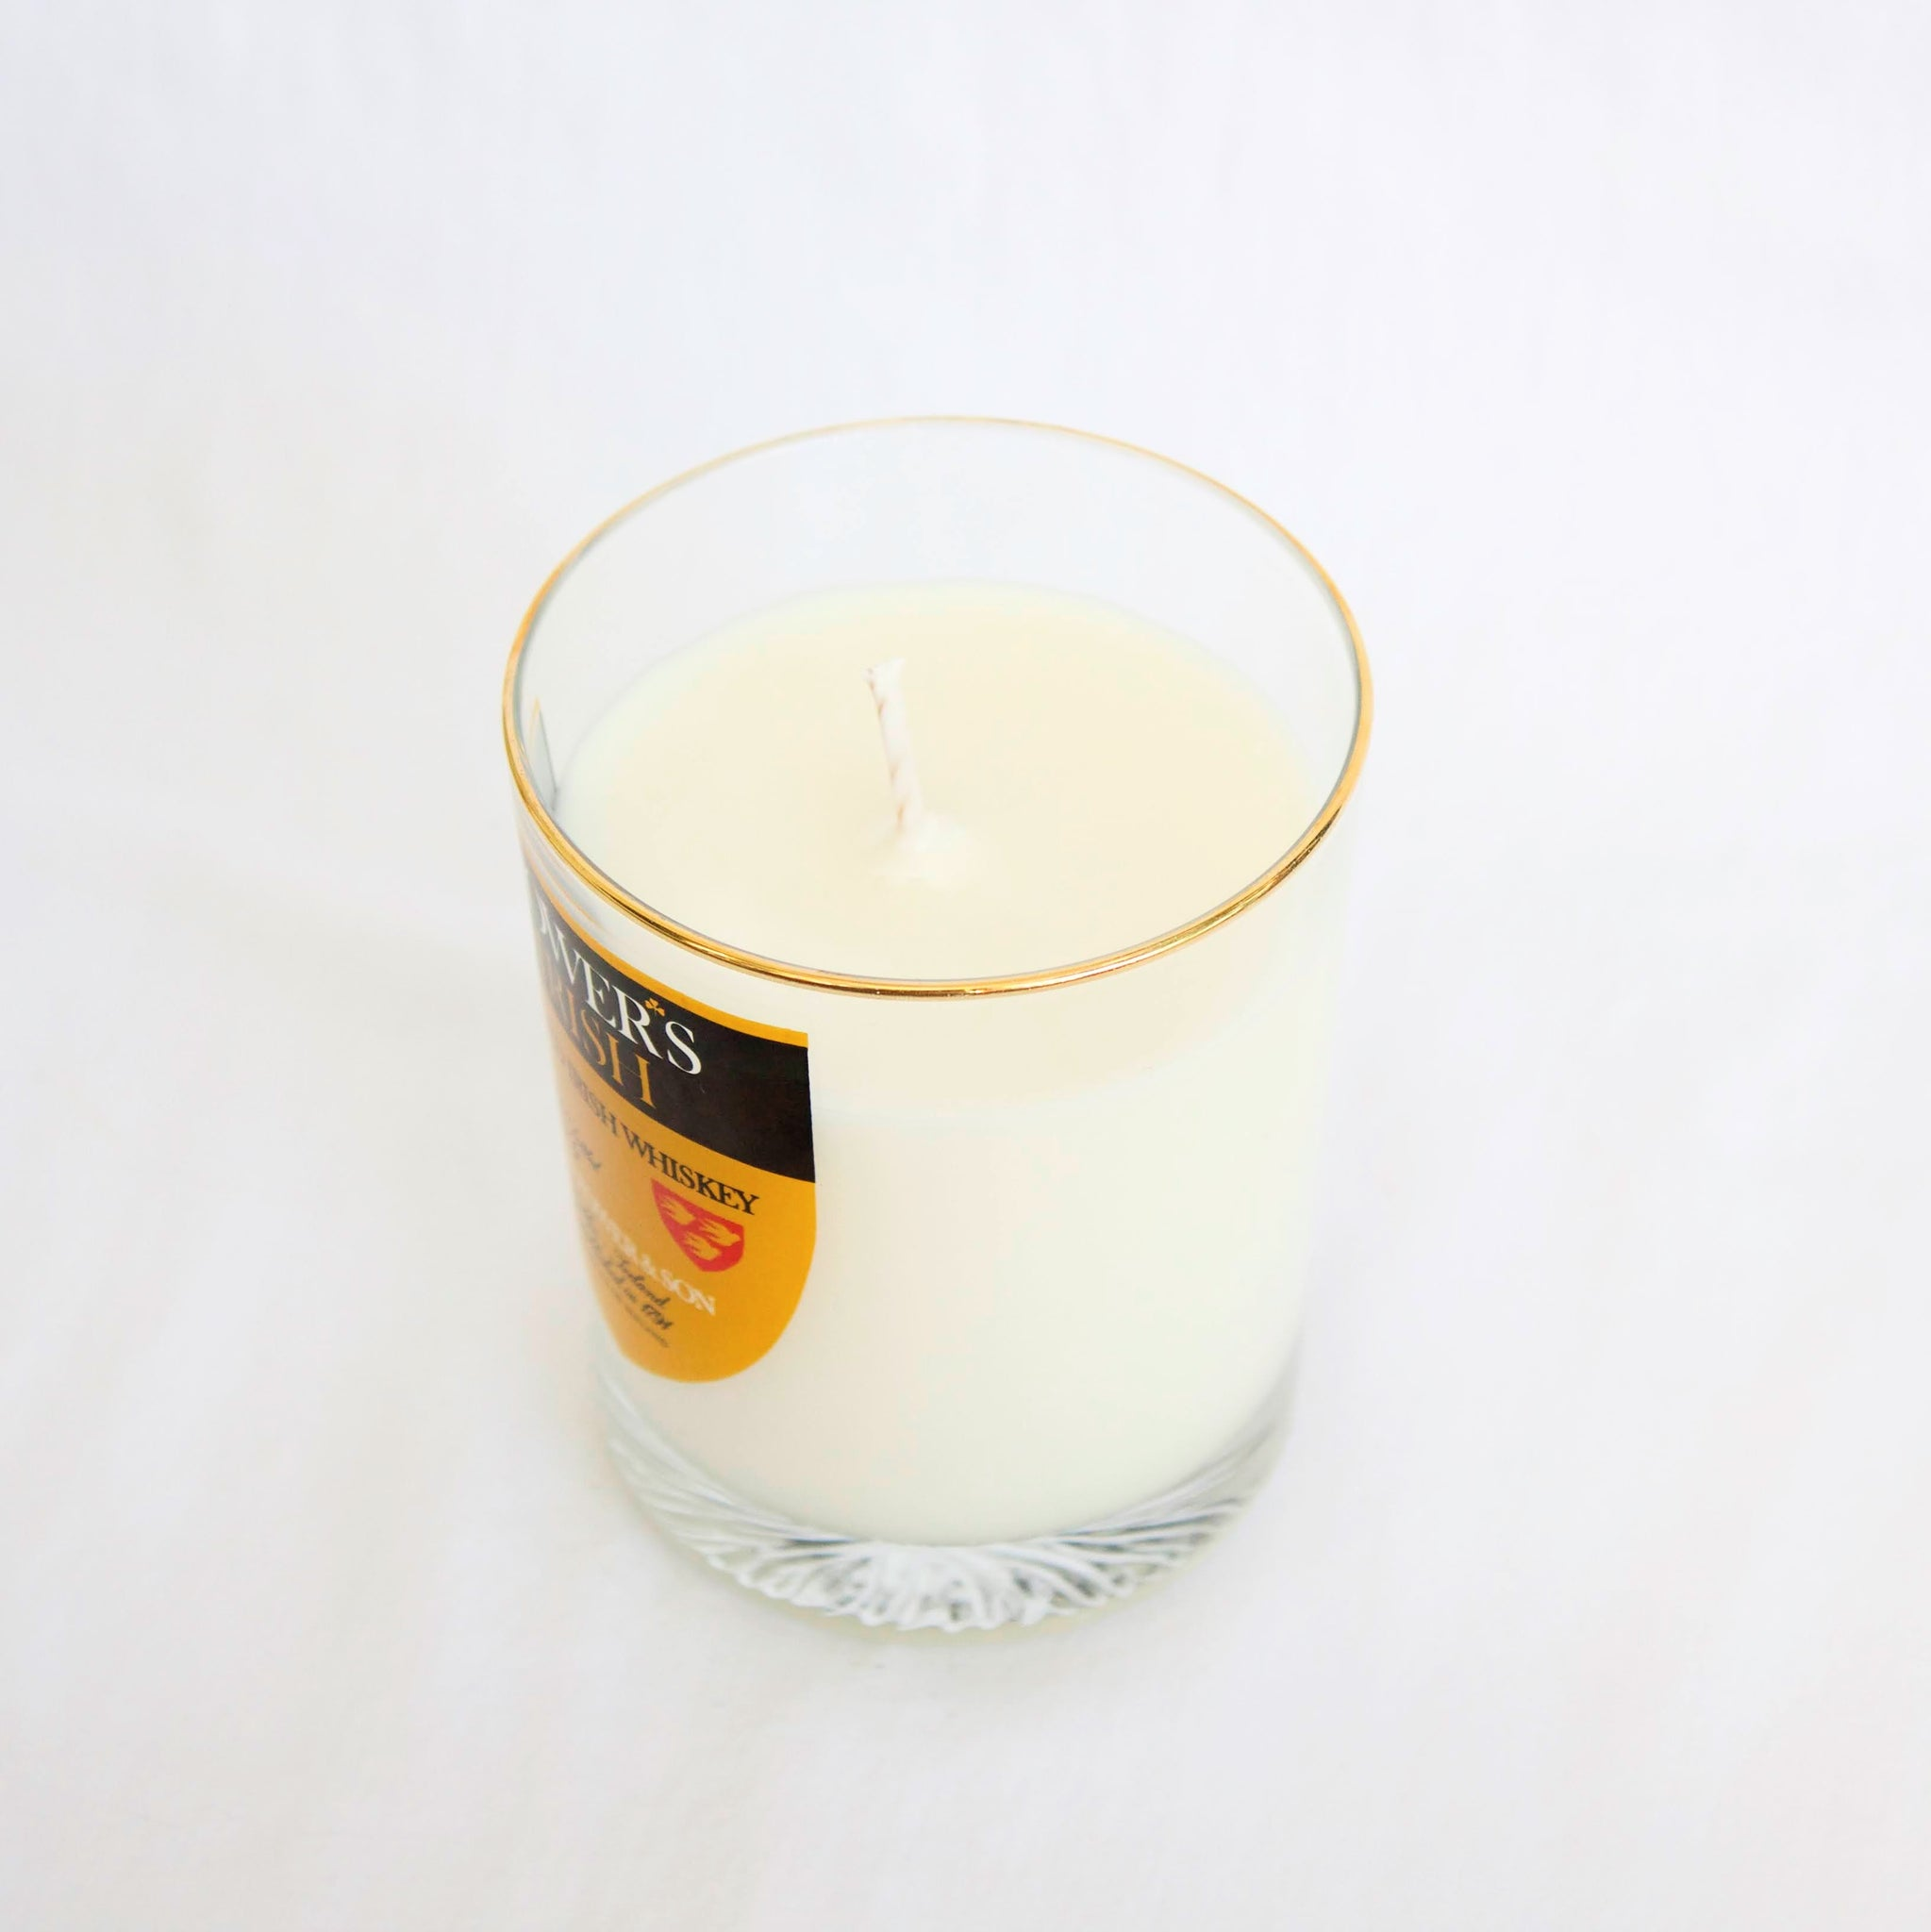 Power's Irish Whiskey Candle